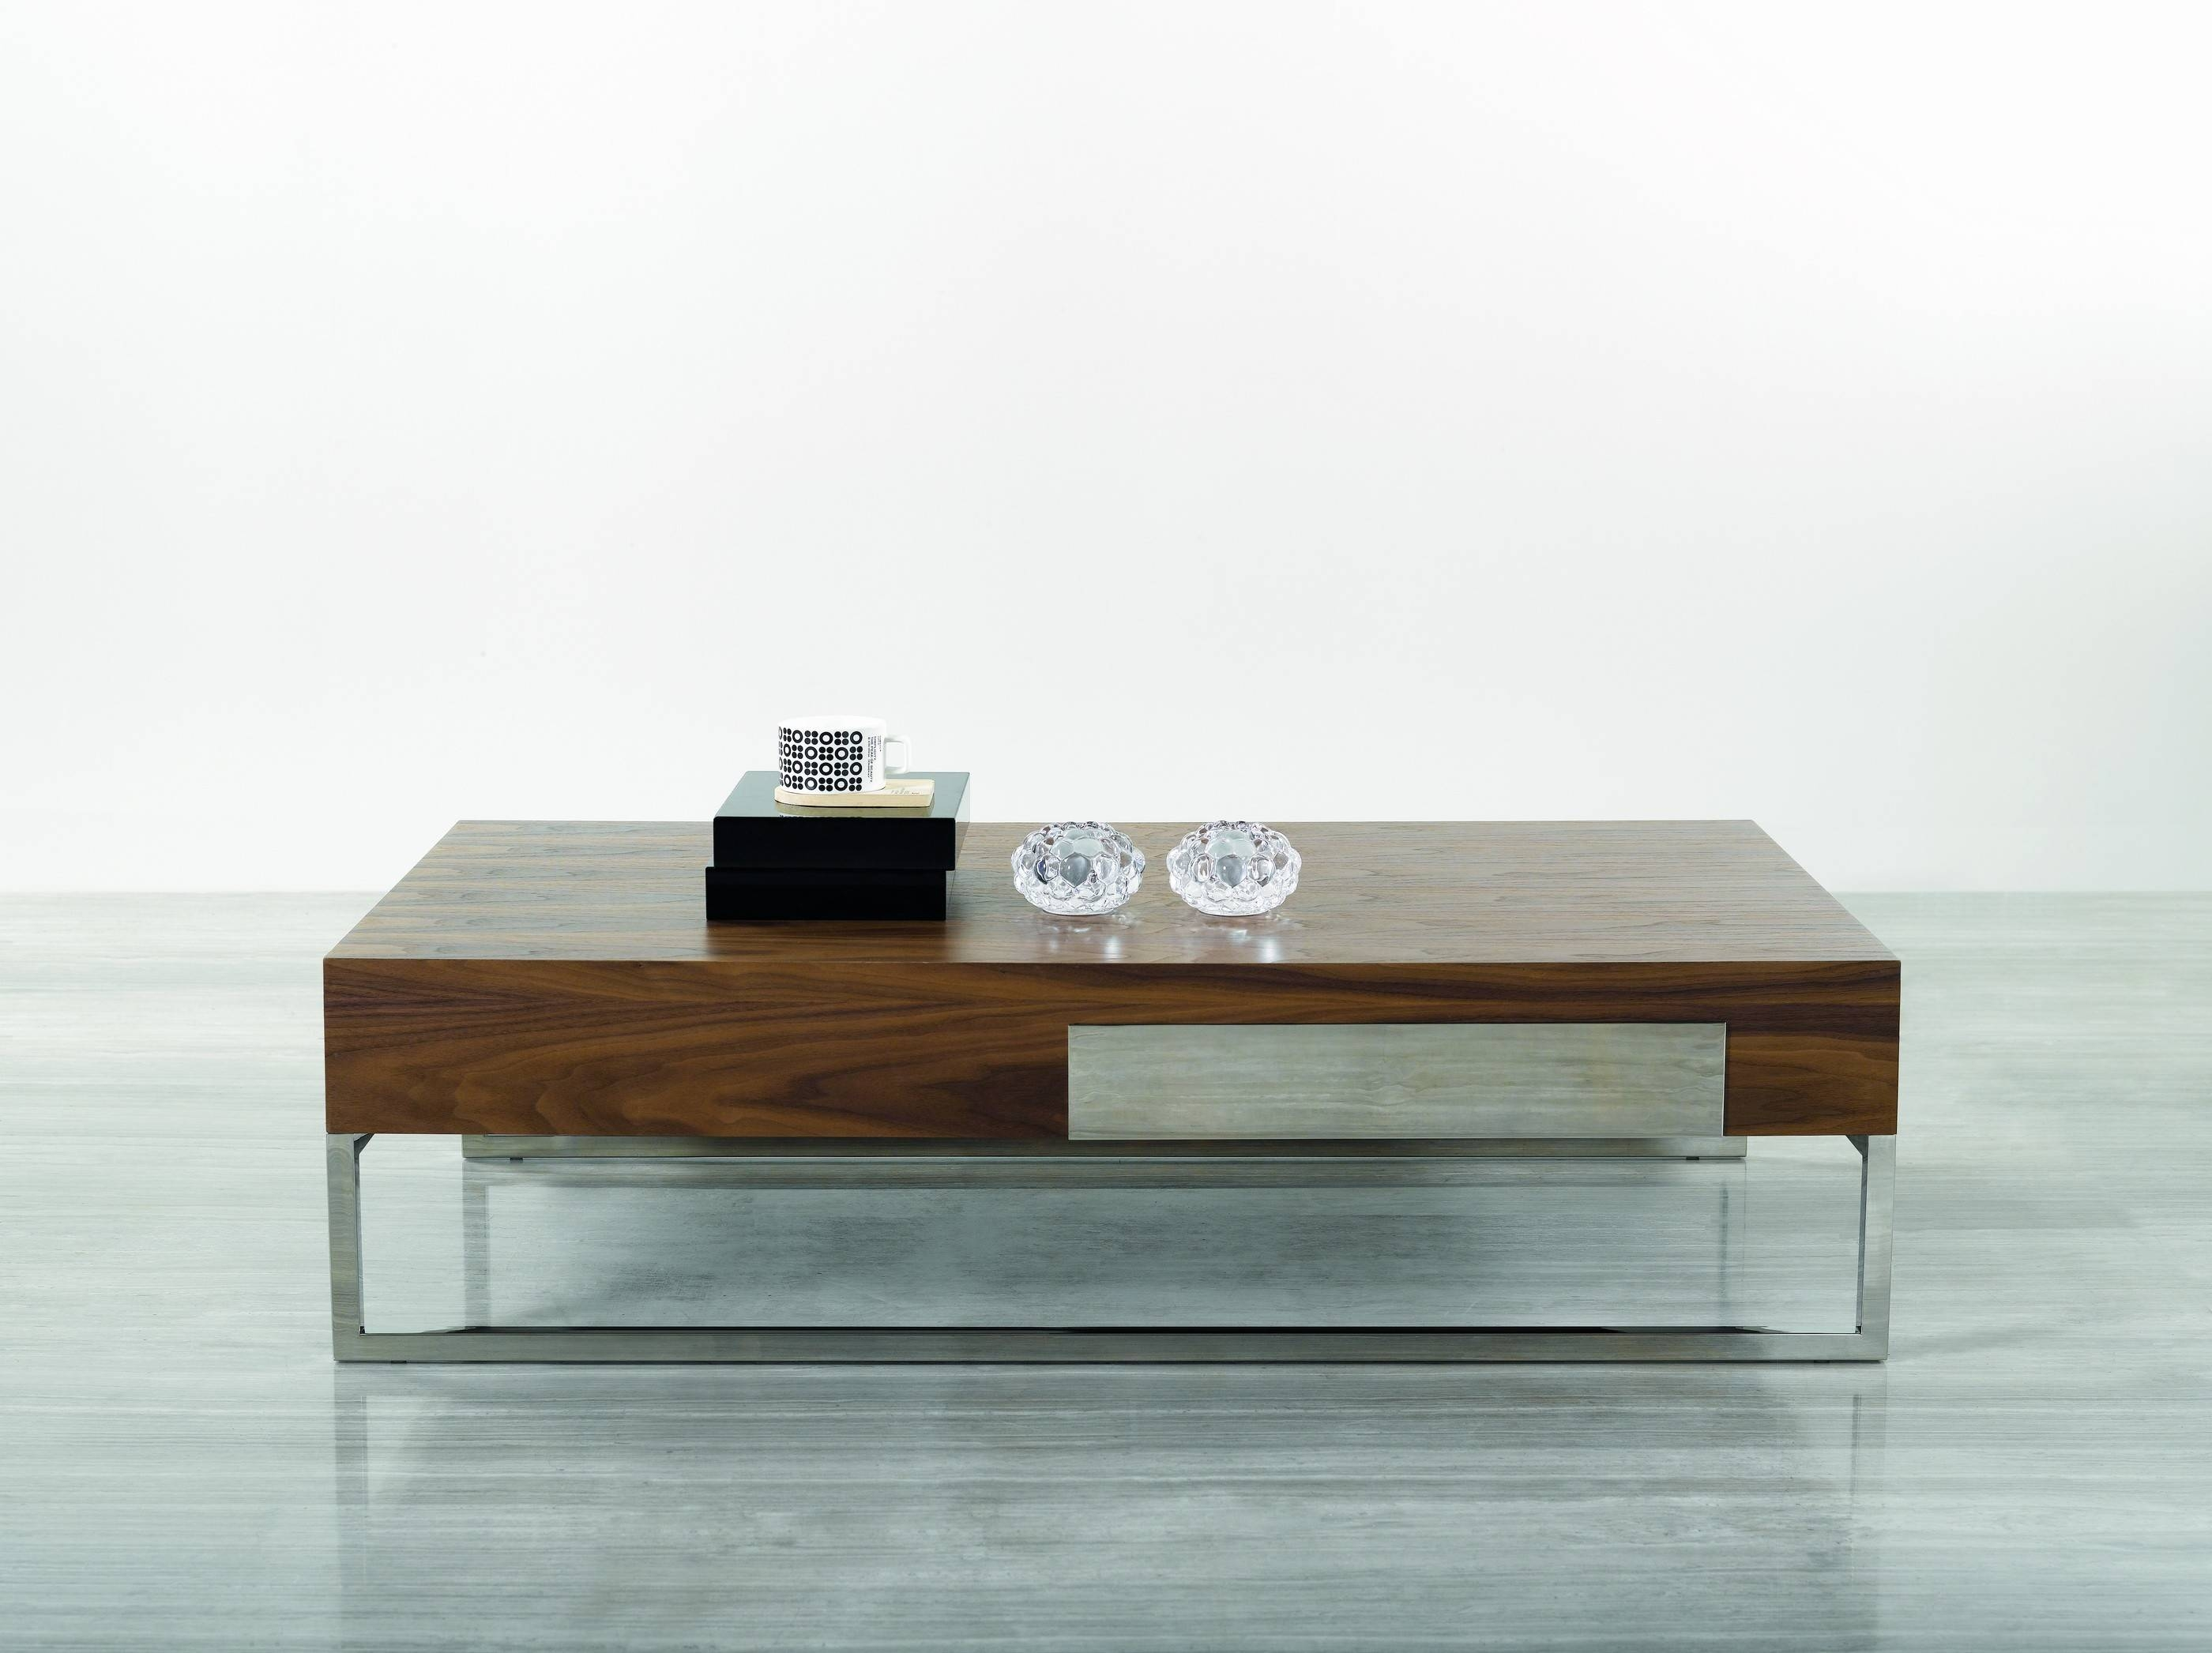 Coffee Table: Modern Coffee Table Storage Coffee Table Book intended for Wood Modern Coffee Tables (Image 7 of 30)